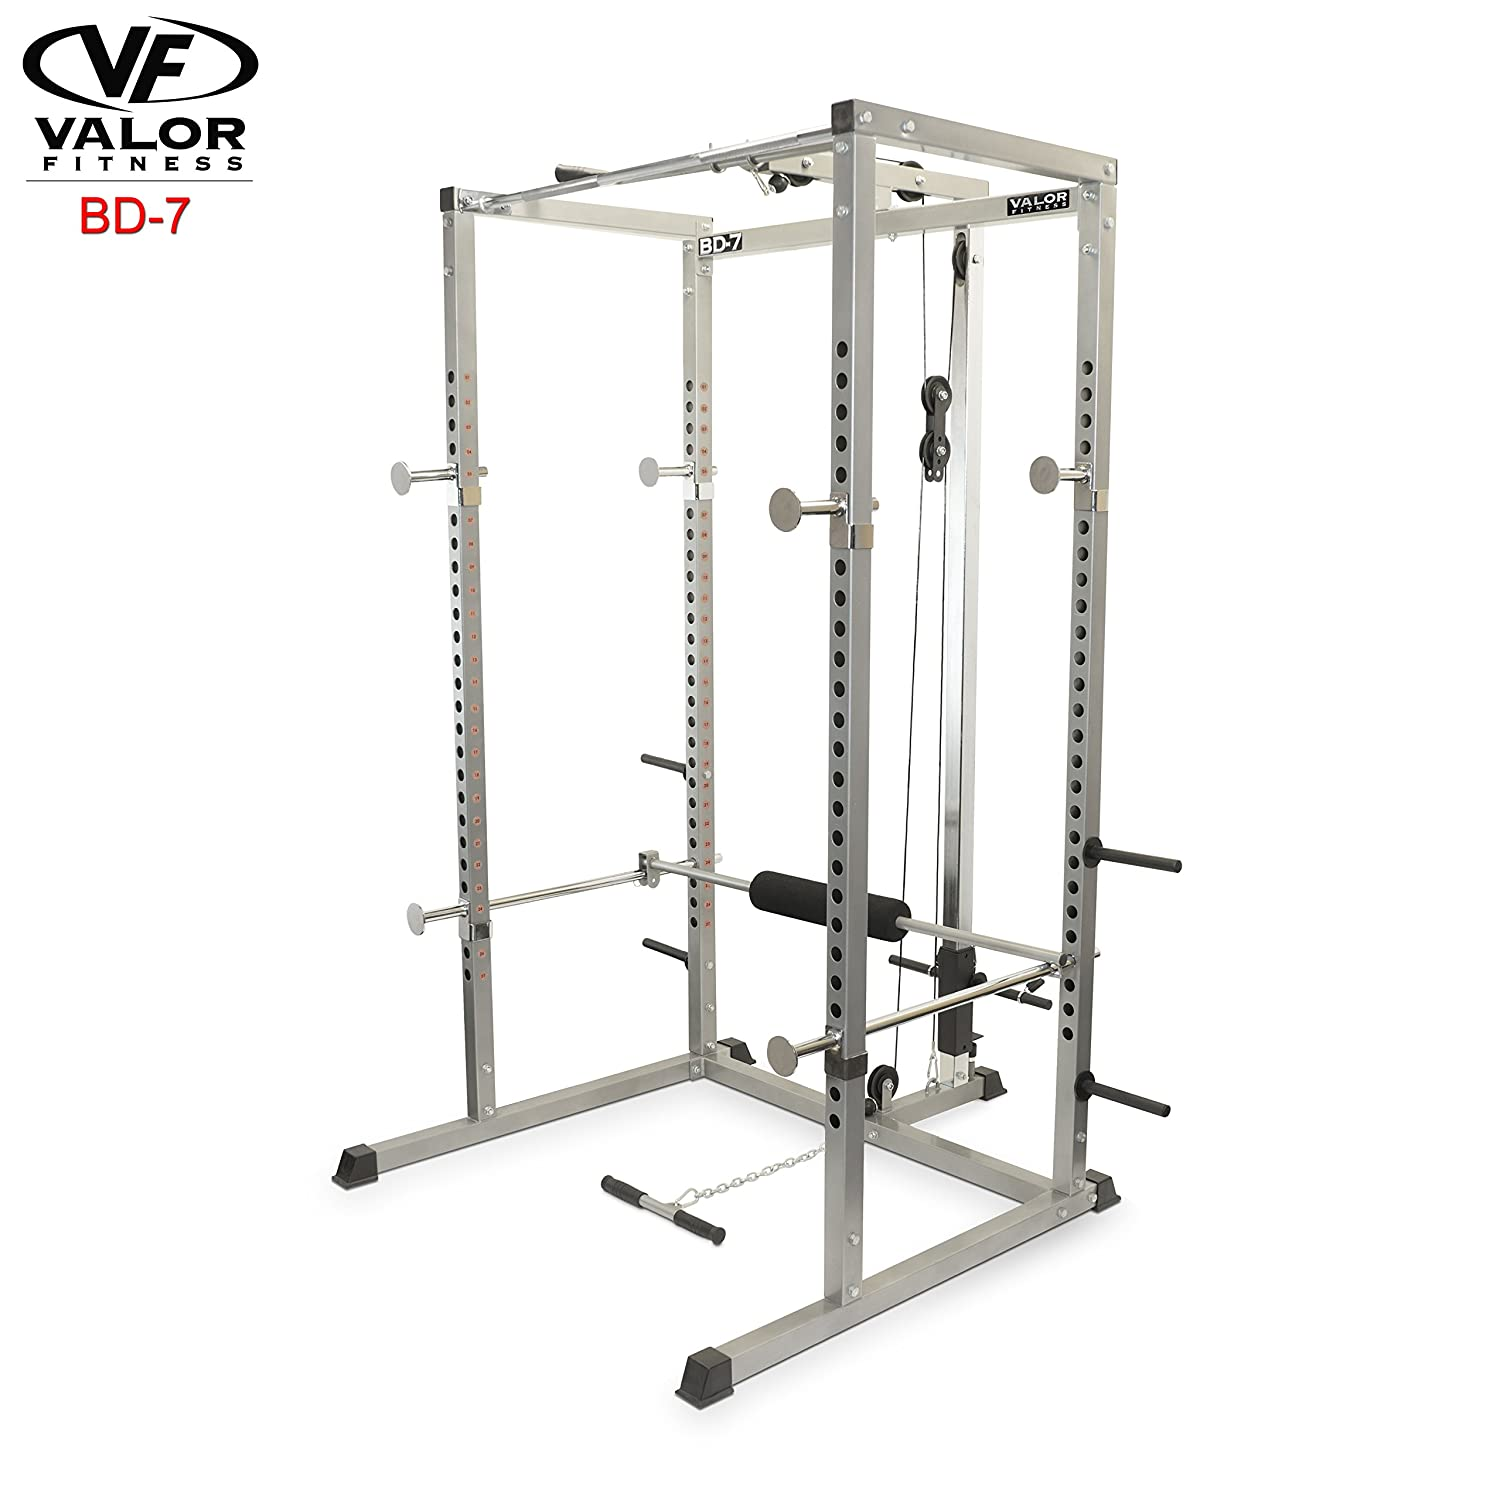 3. Valor Fitness BD-7 Power Rack with Lat Pull Attachment